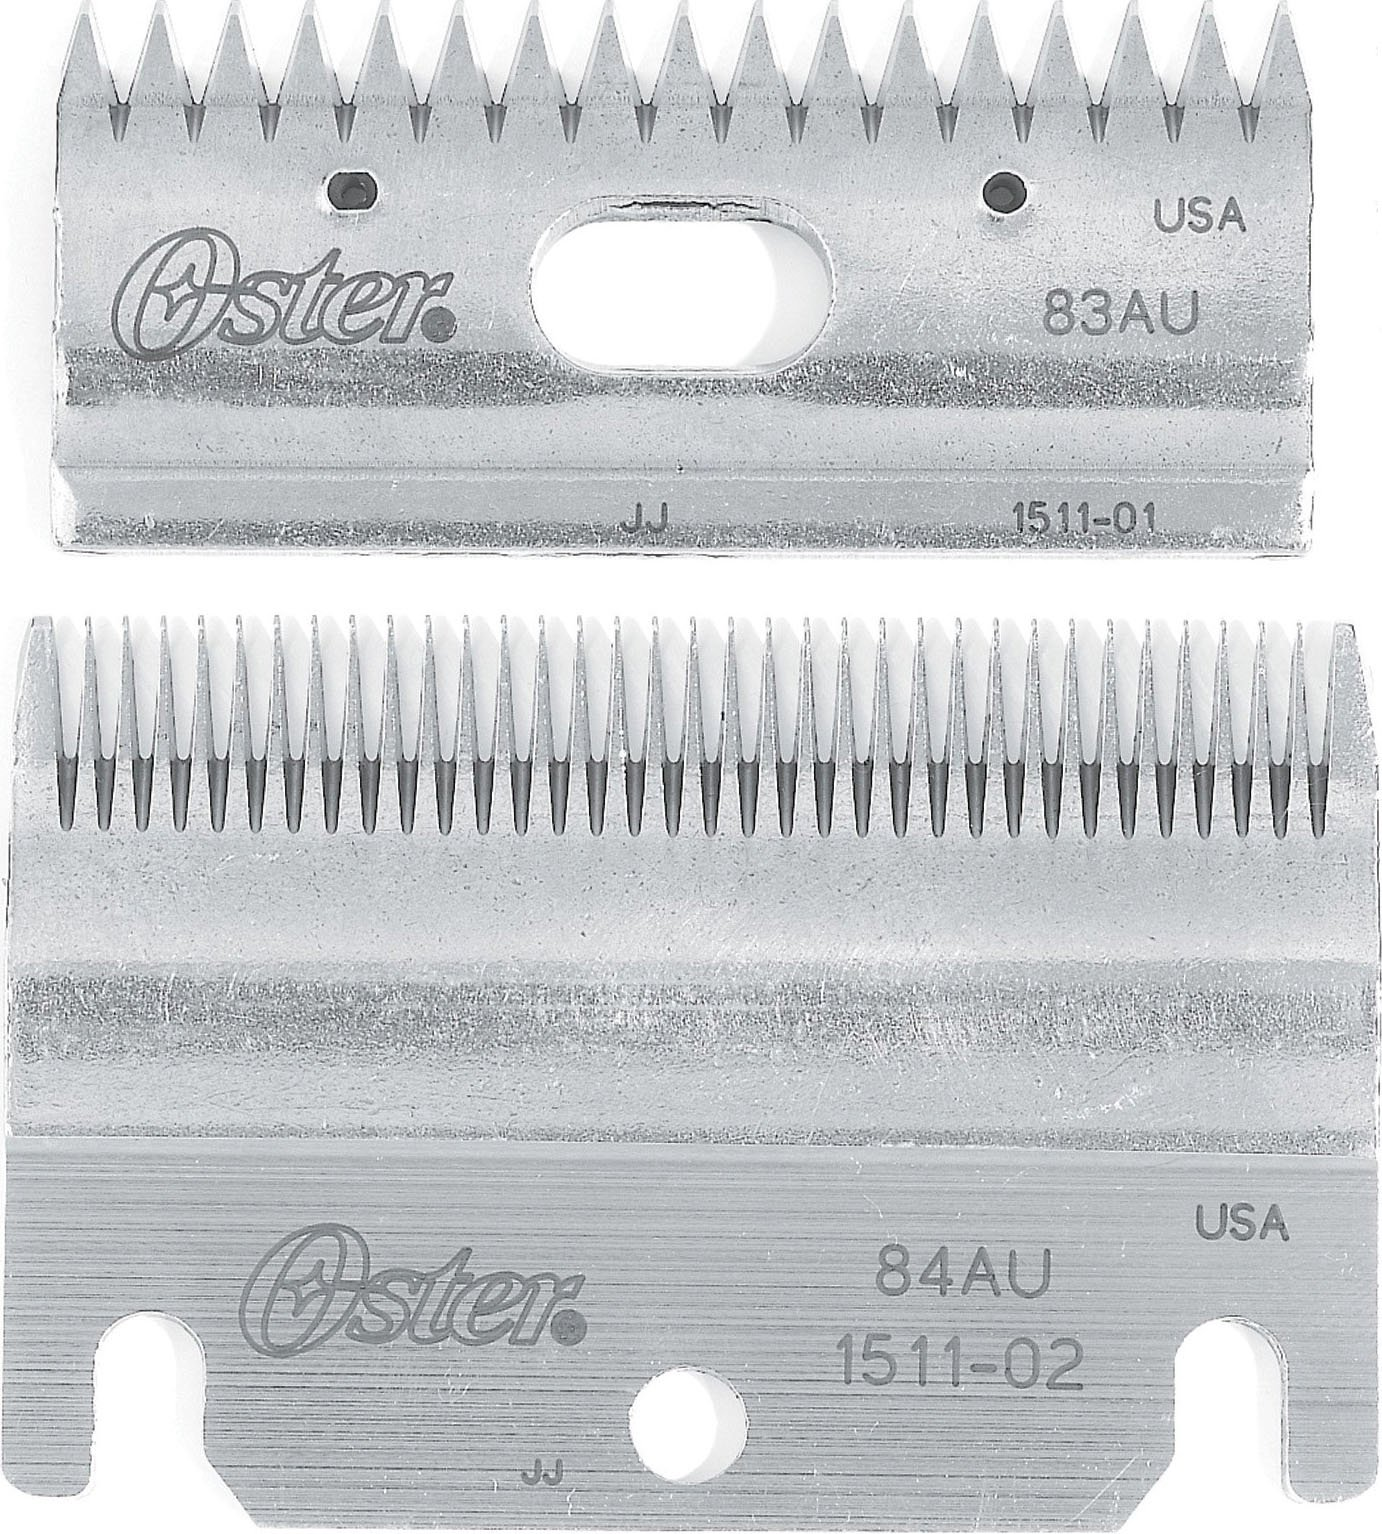 Oster Clipmaster Top and Bottom Clipper Blade Set, 83AU and 84AU (078511-126-001) by Oster